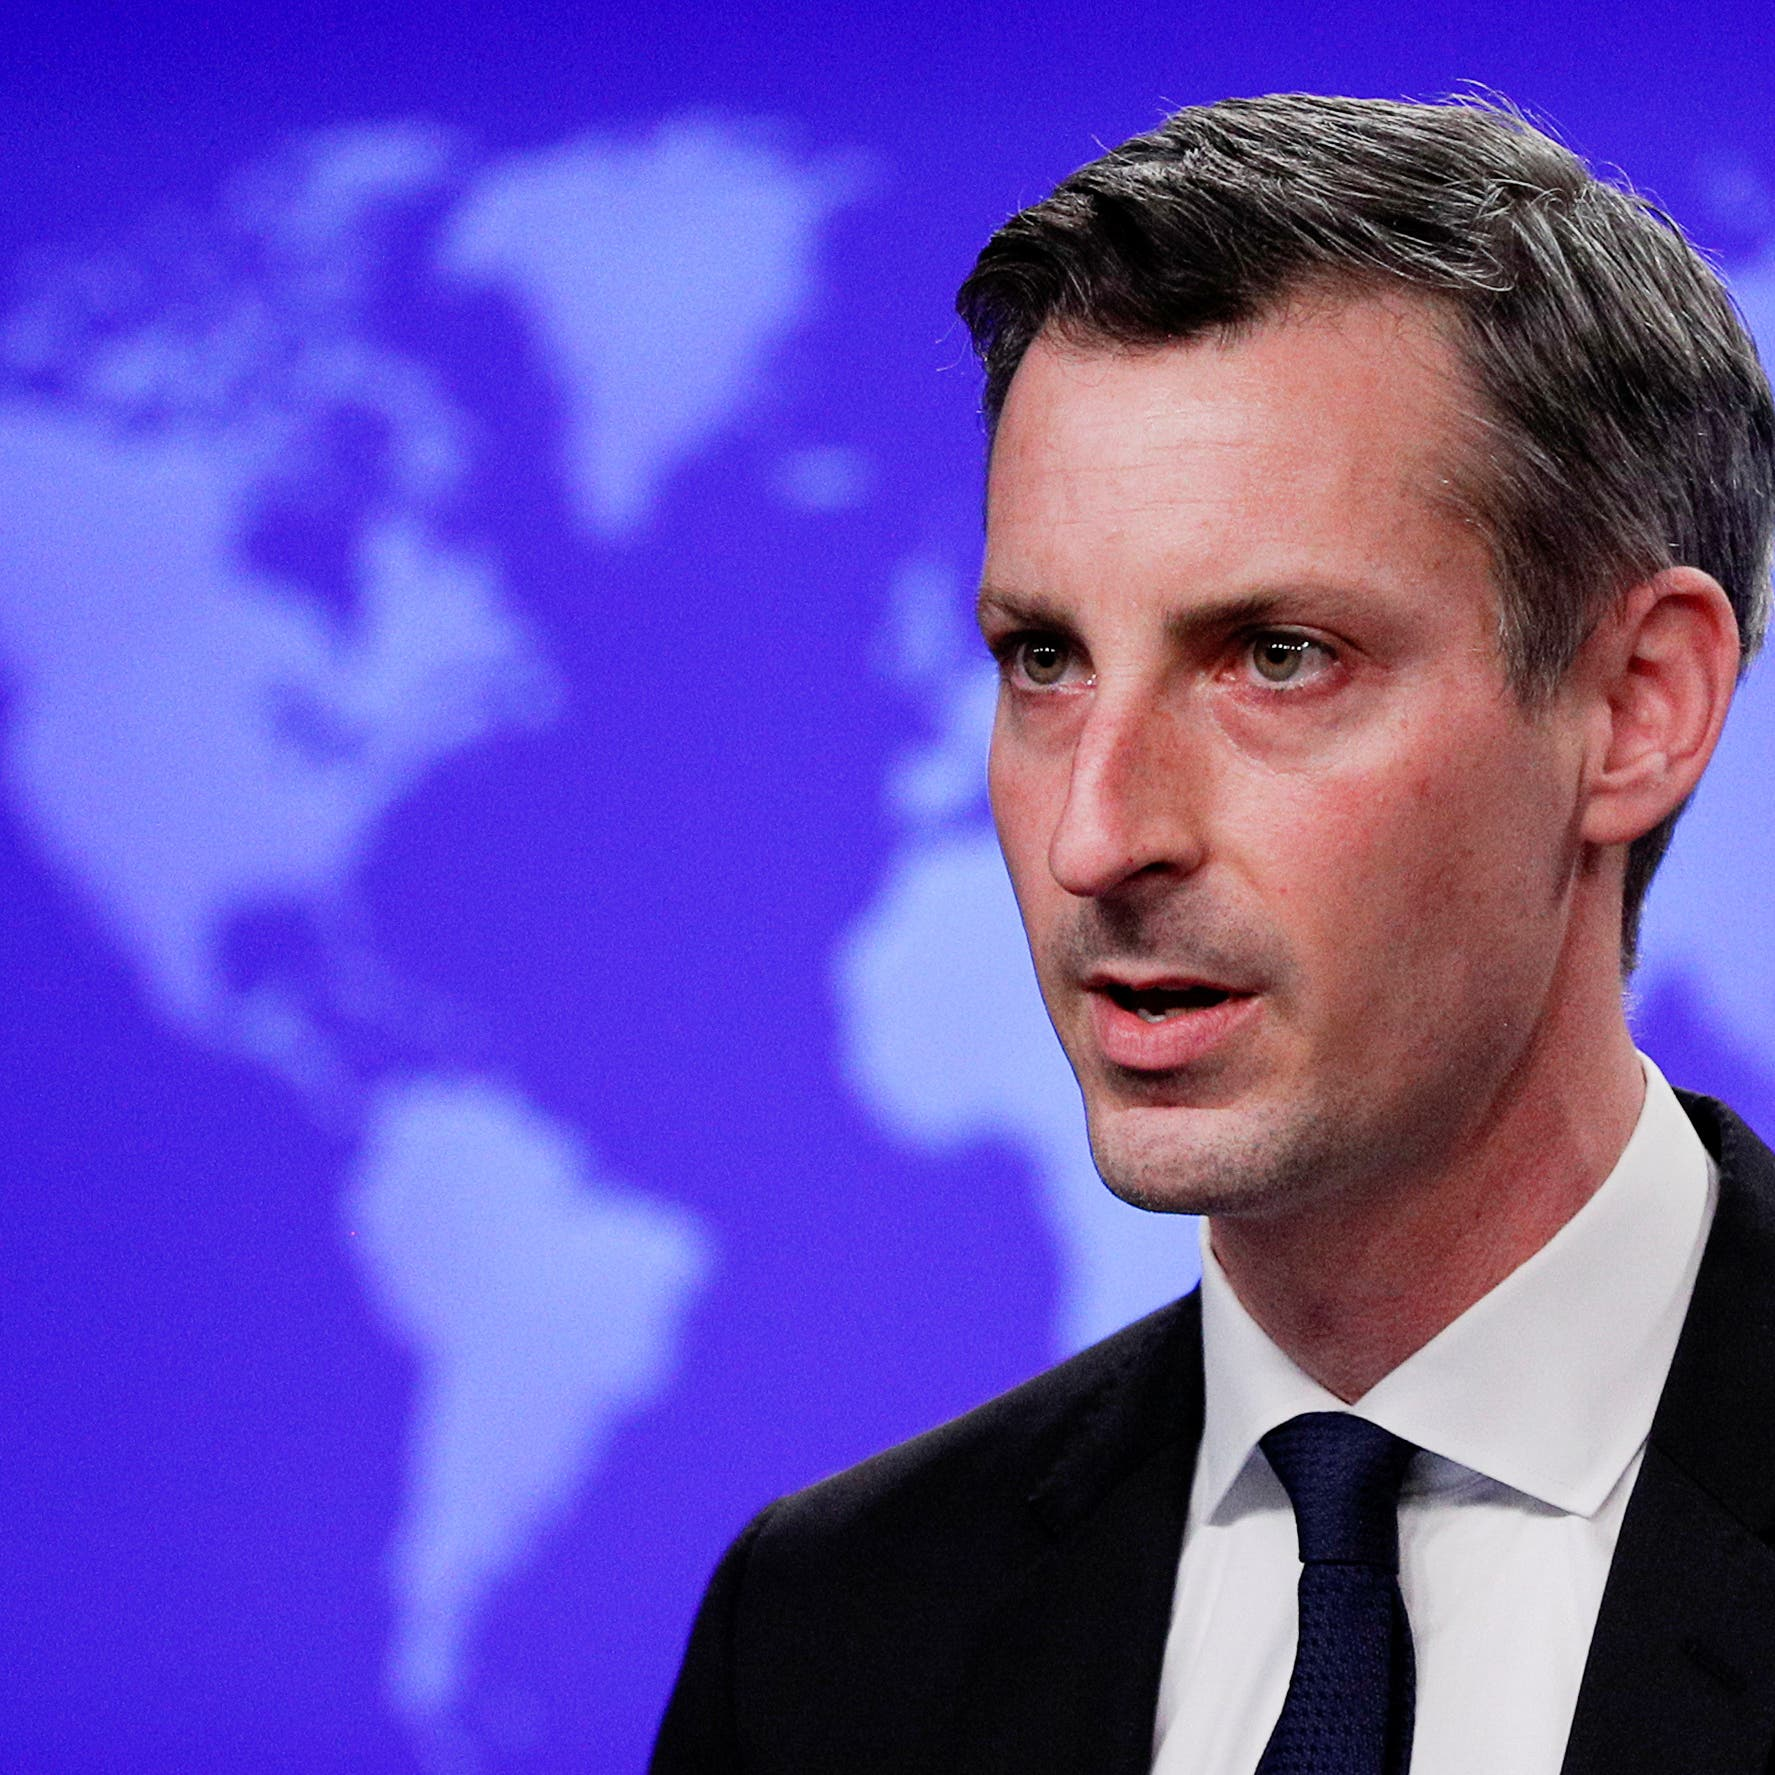 US will recognize a Taliban government if it respects women rights, shuns extremism